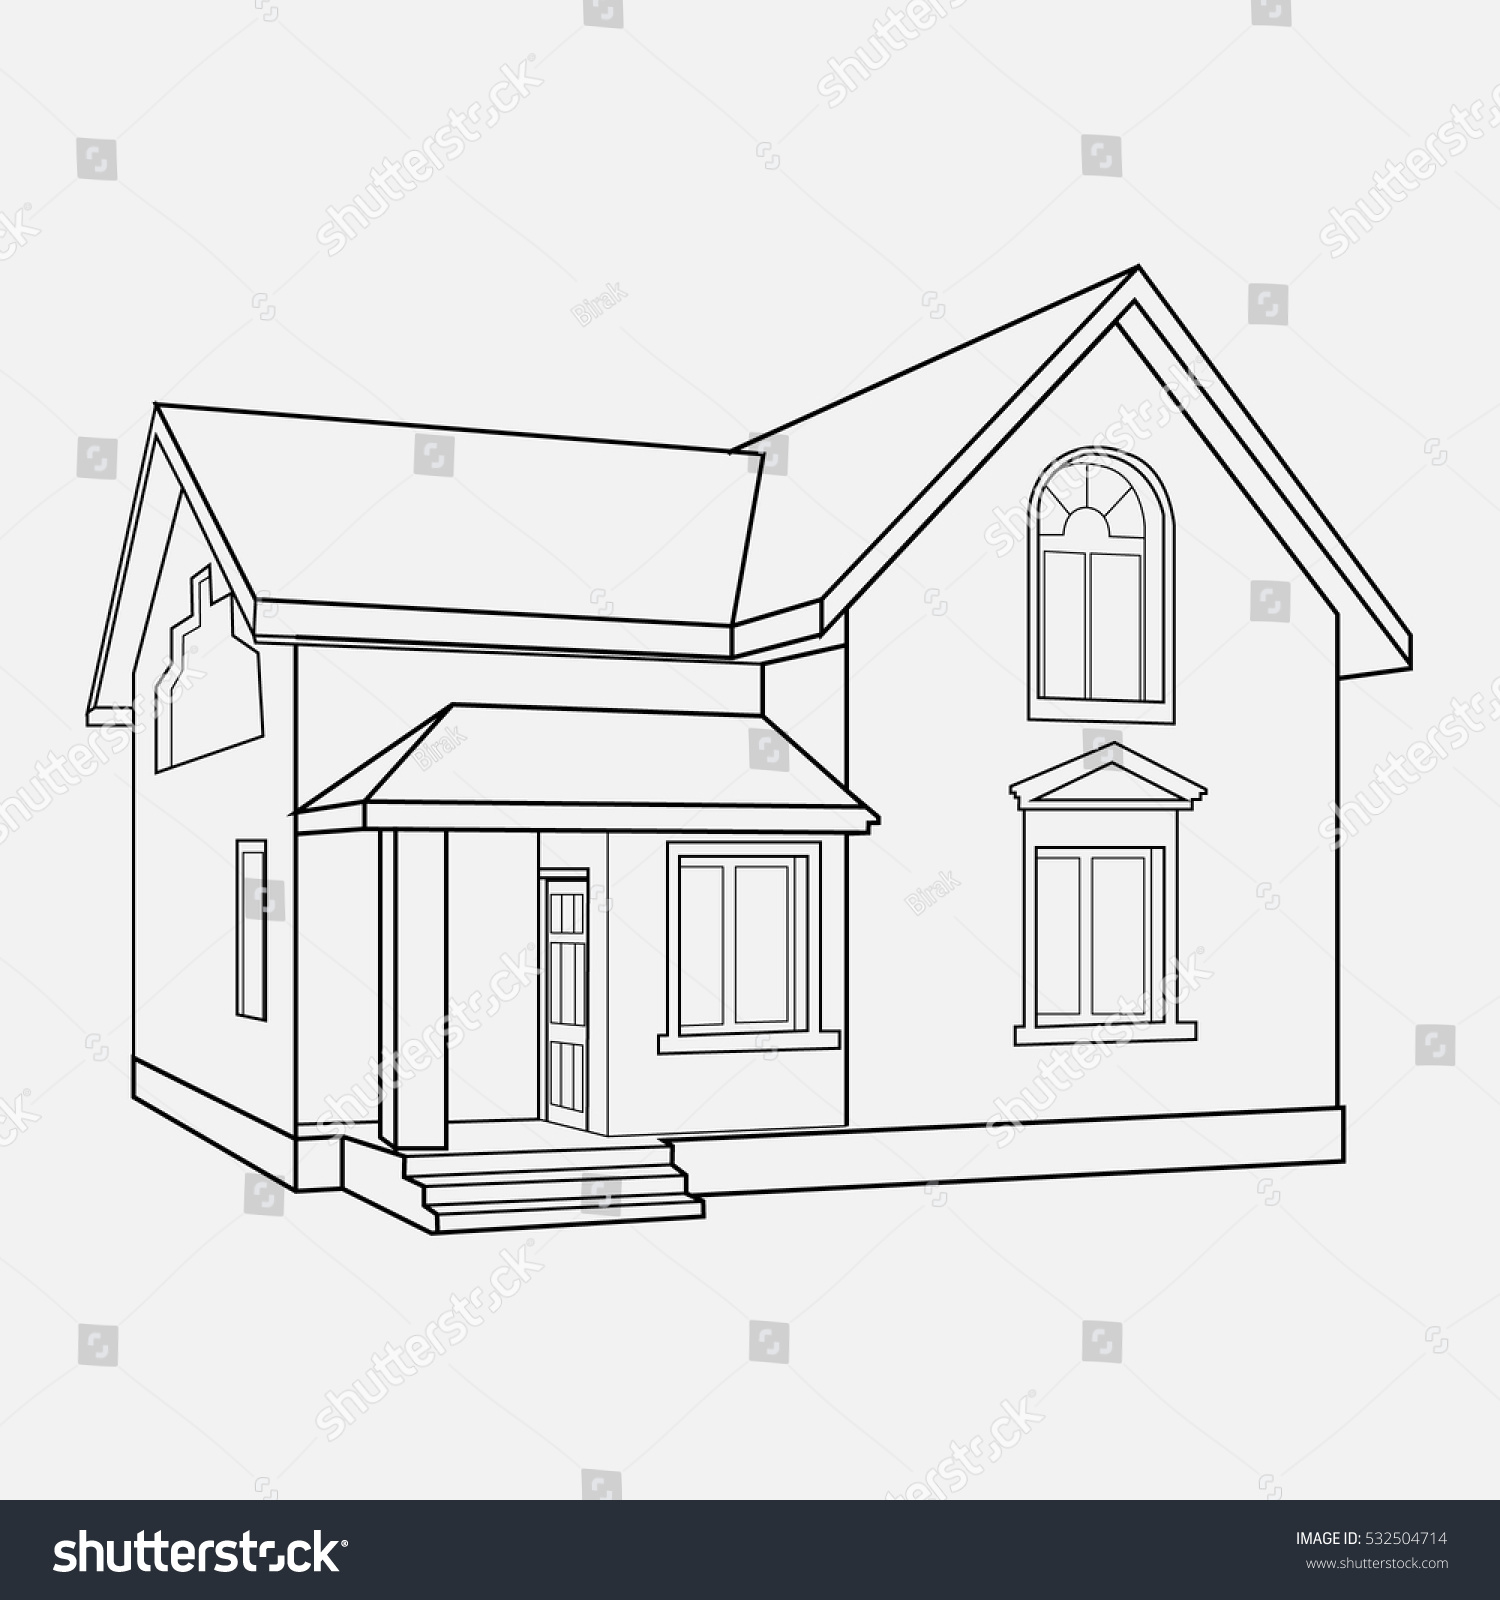 House Building Sketch Prospect Building Drawings Stock Vector